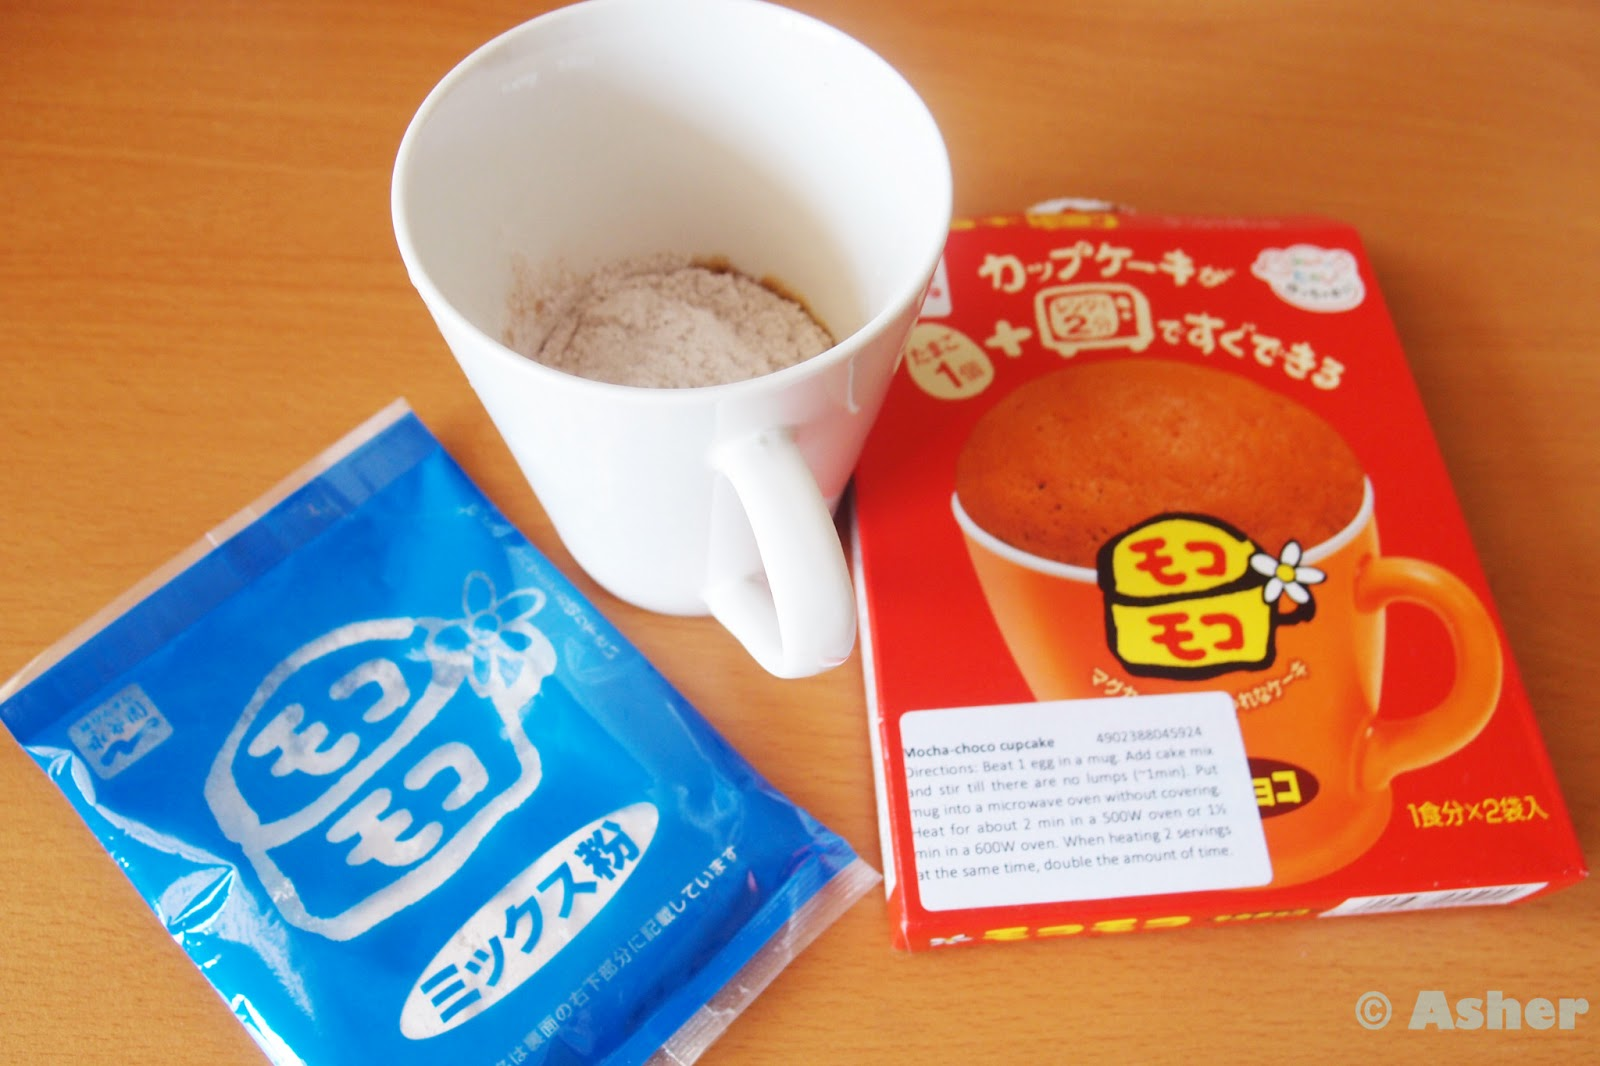 Japanese Microwave Cake Recipe: Japanese Instant Cake In A Mug From Daiso